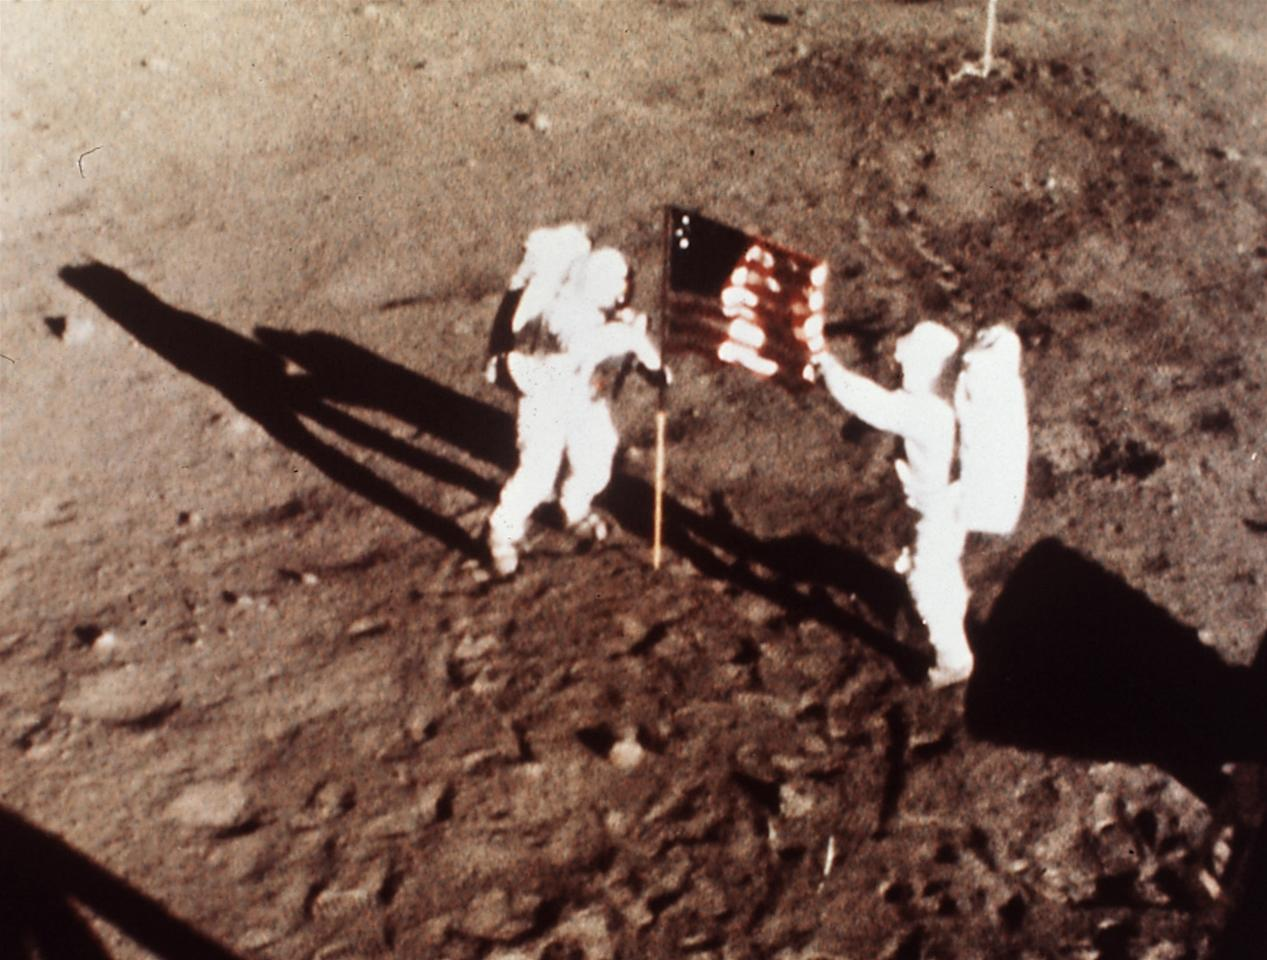 "FILE - In this July 20, 1969, file photo, provided by NASA, Apollo 11 astronauts Neil Armstrong and Edwin E. ""Buzz"" Aldrin, the first men to land on the moon, plant the U.S. flag on the lunar surface. The family of Neil Armstrong, the first man to walk on the moon, says he has died at age 82 on Saturday, Aug. 25, 2012. Armstrong commanded the Apollo 11 spacecraft that landed on the moon July 20, 1969. He radioed back to Earth the historic news of ""one giant leap for mankind."" (AP Photo/NASA, File)"